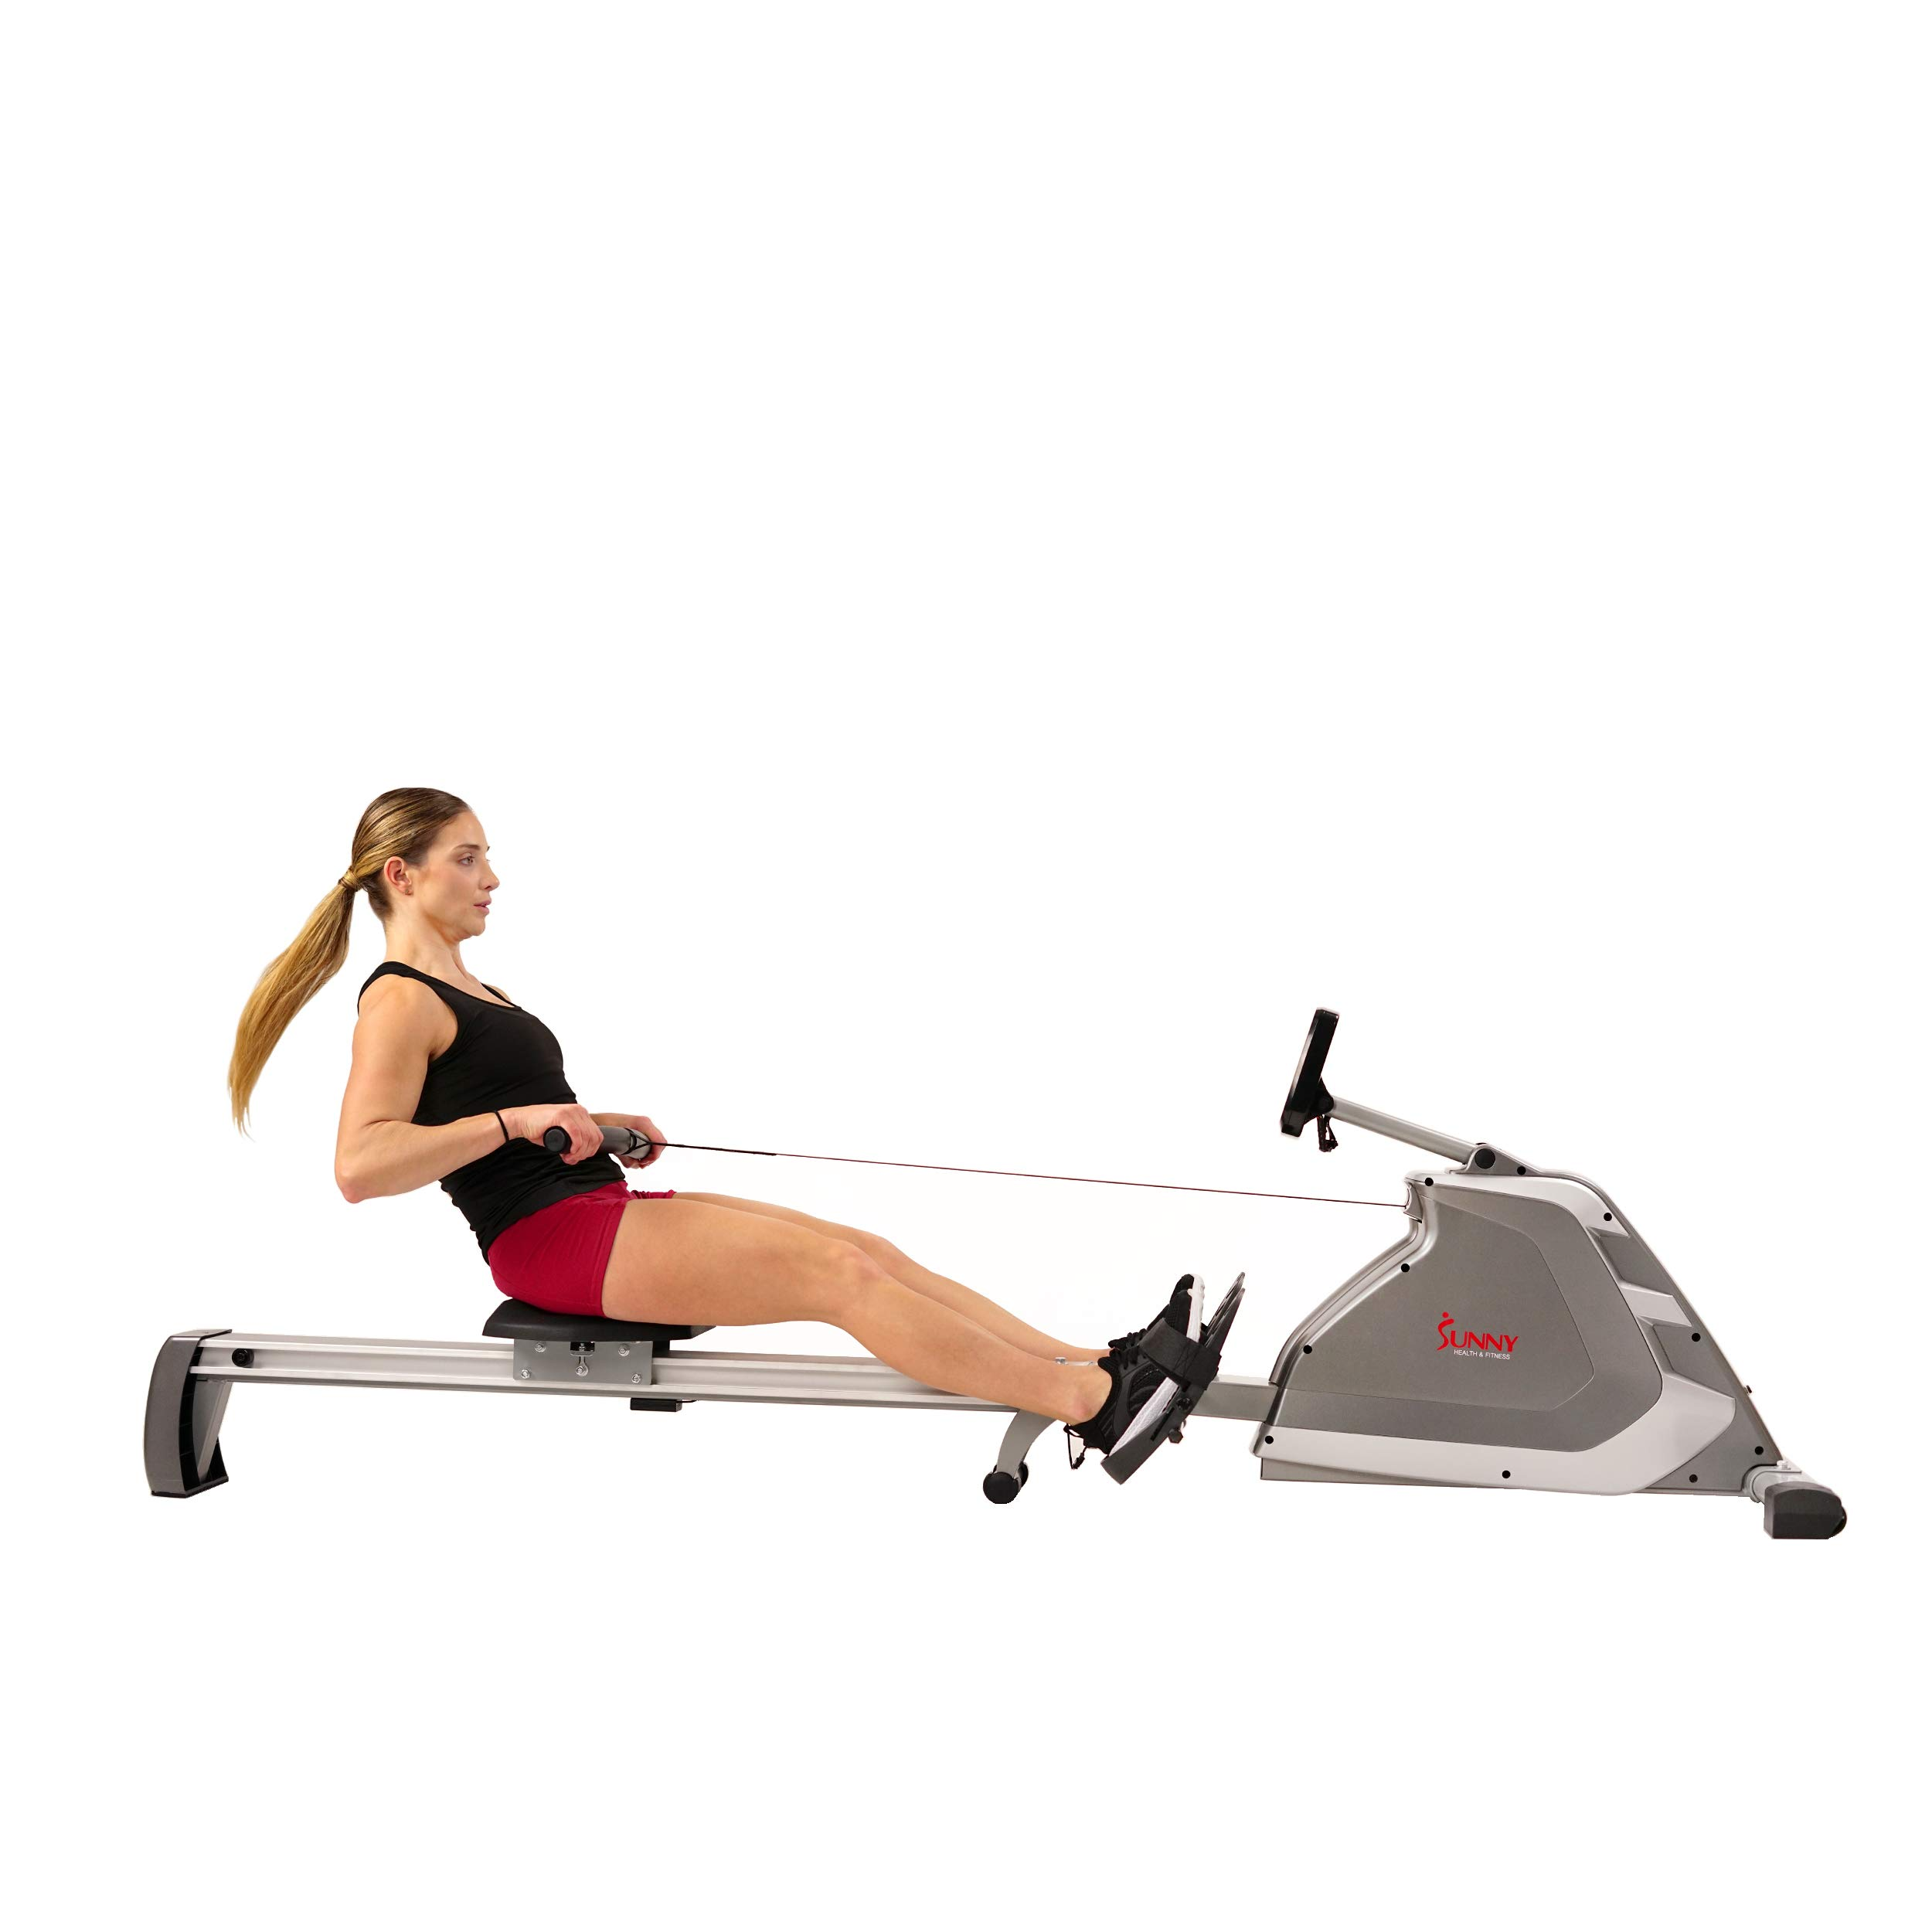 Sunny Health & Fitness Magnetic Rowing Machine Rower with High Weight Capacity, Dual Resistance, Programmable Monitor and Aluminum Slide Rail - SF-RW5854, Gray